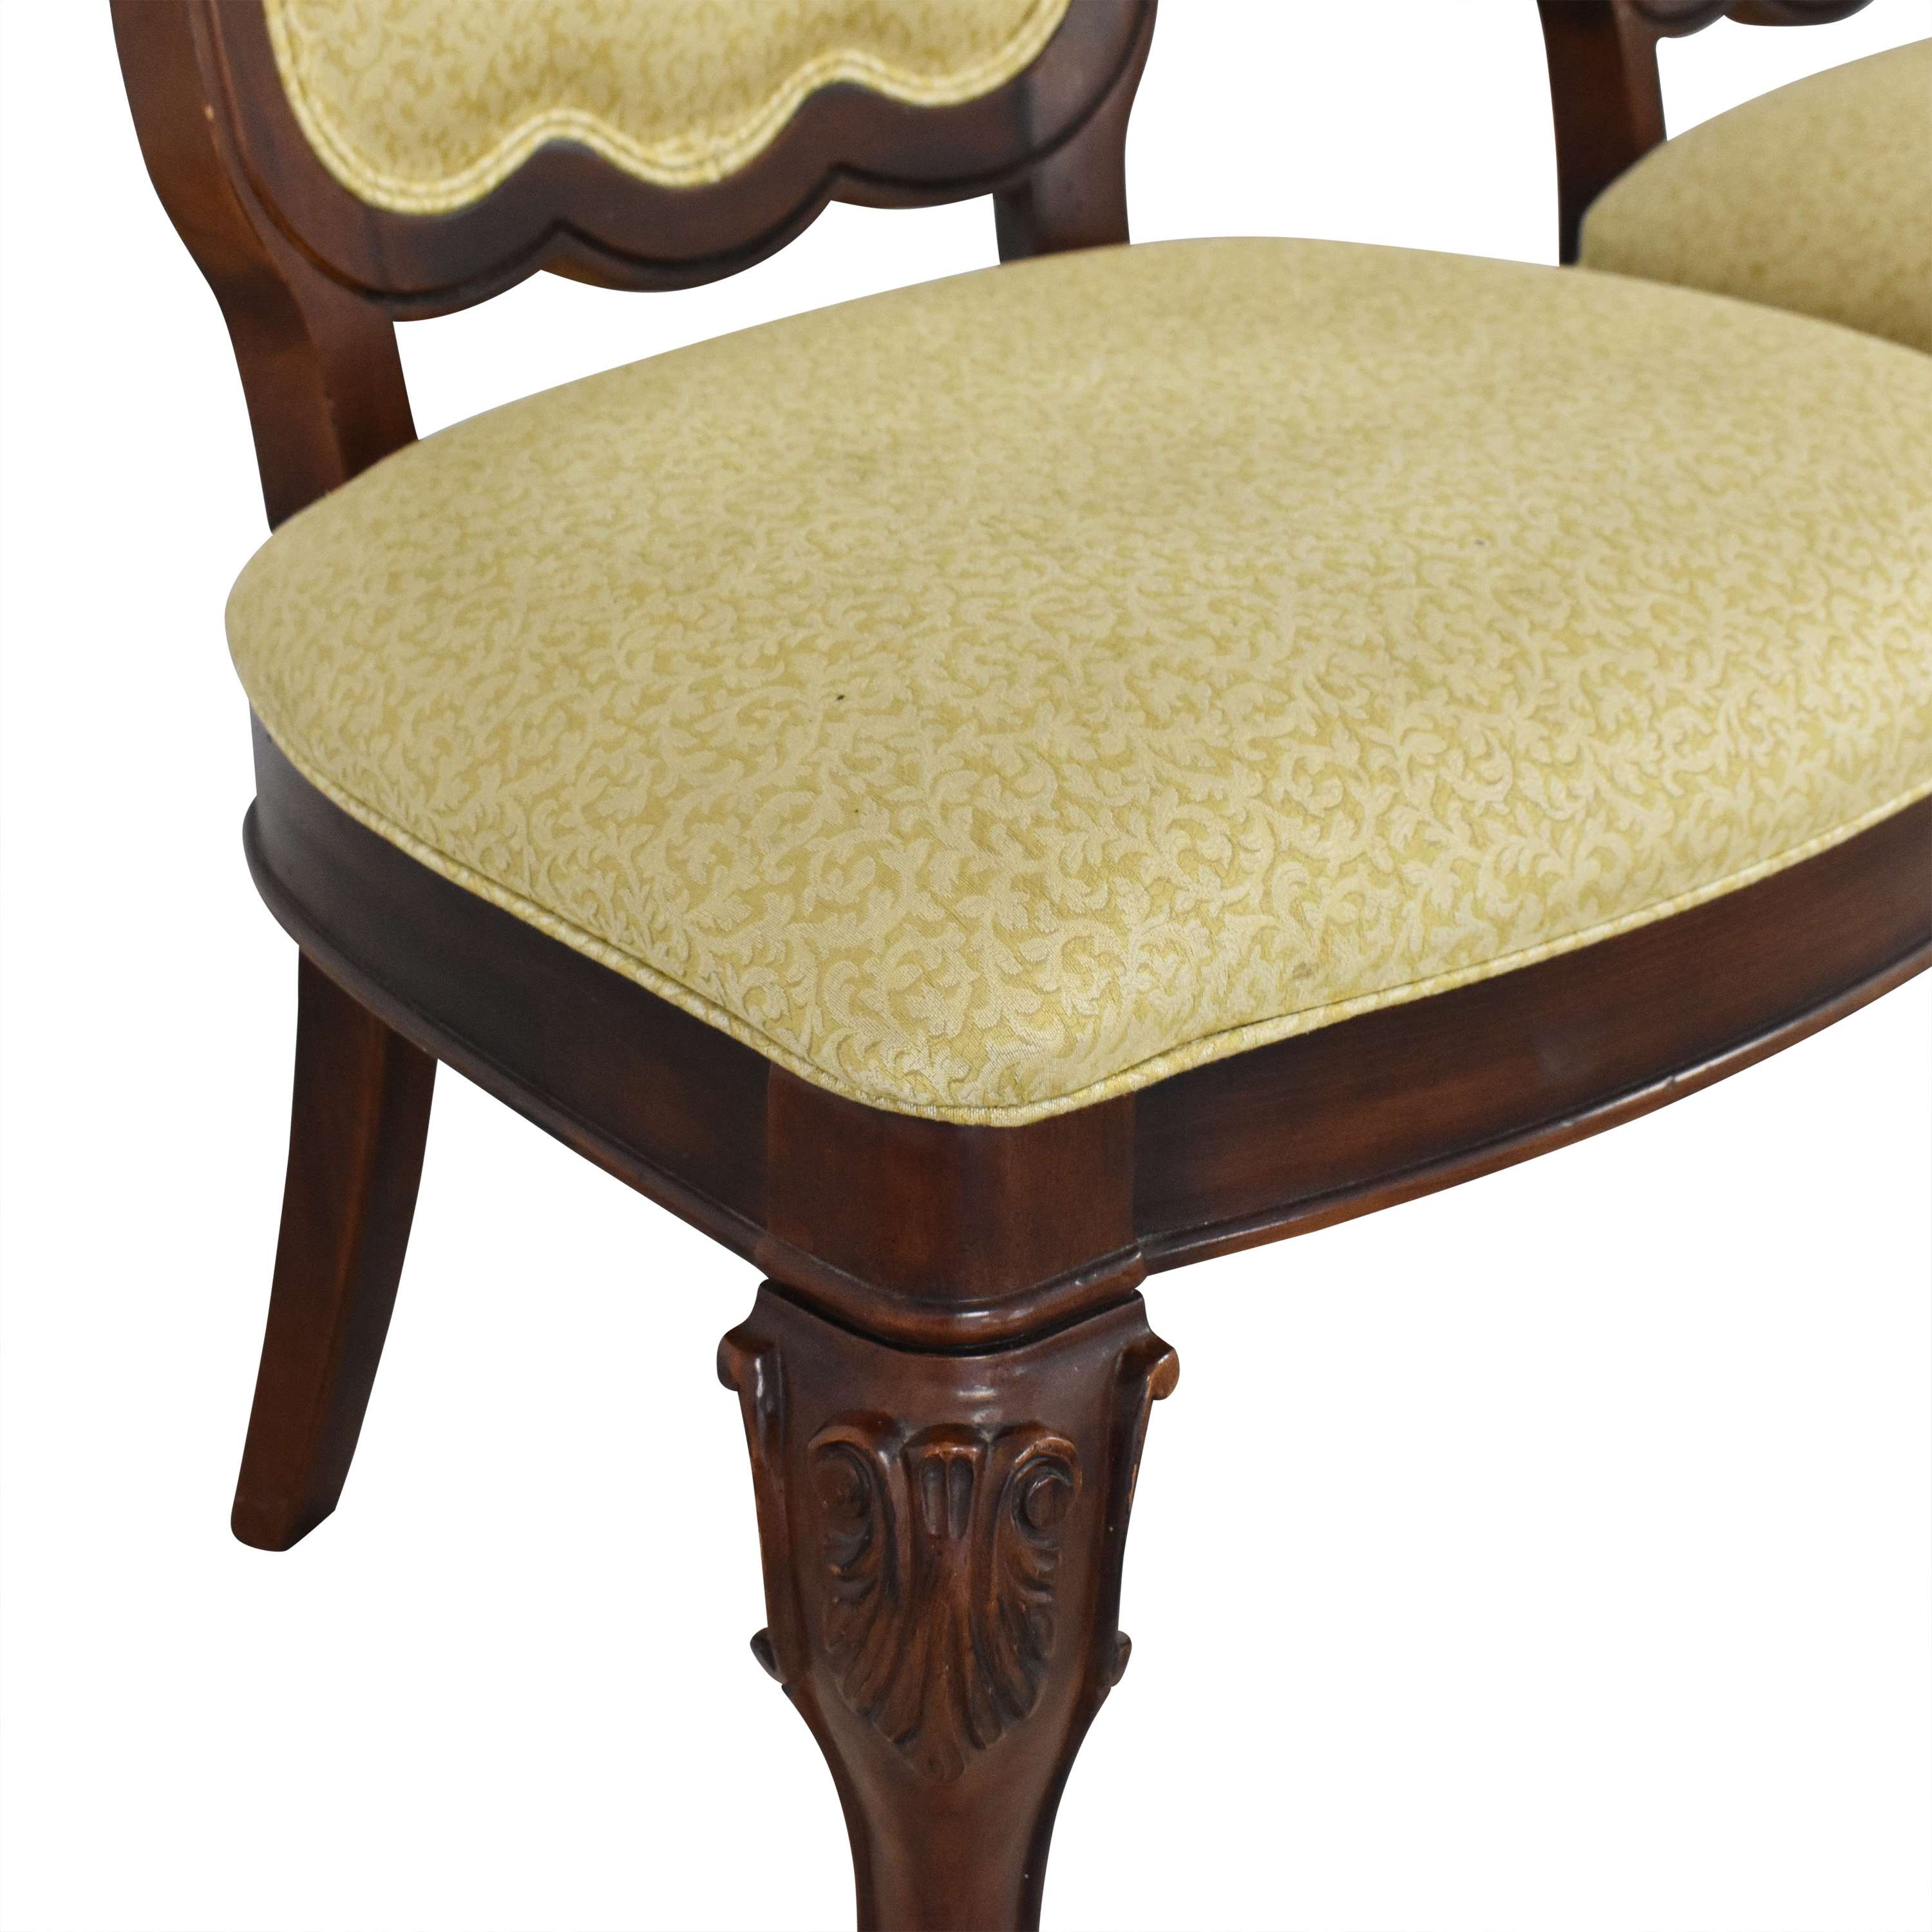 buy Thomasville Thomasville Upholstered Dining Side Chairs online